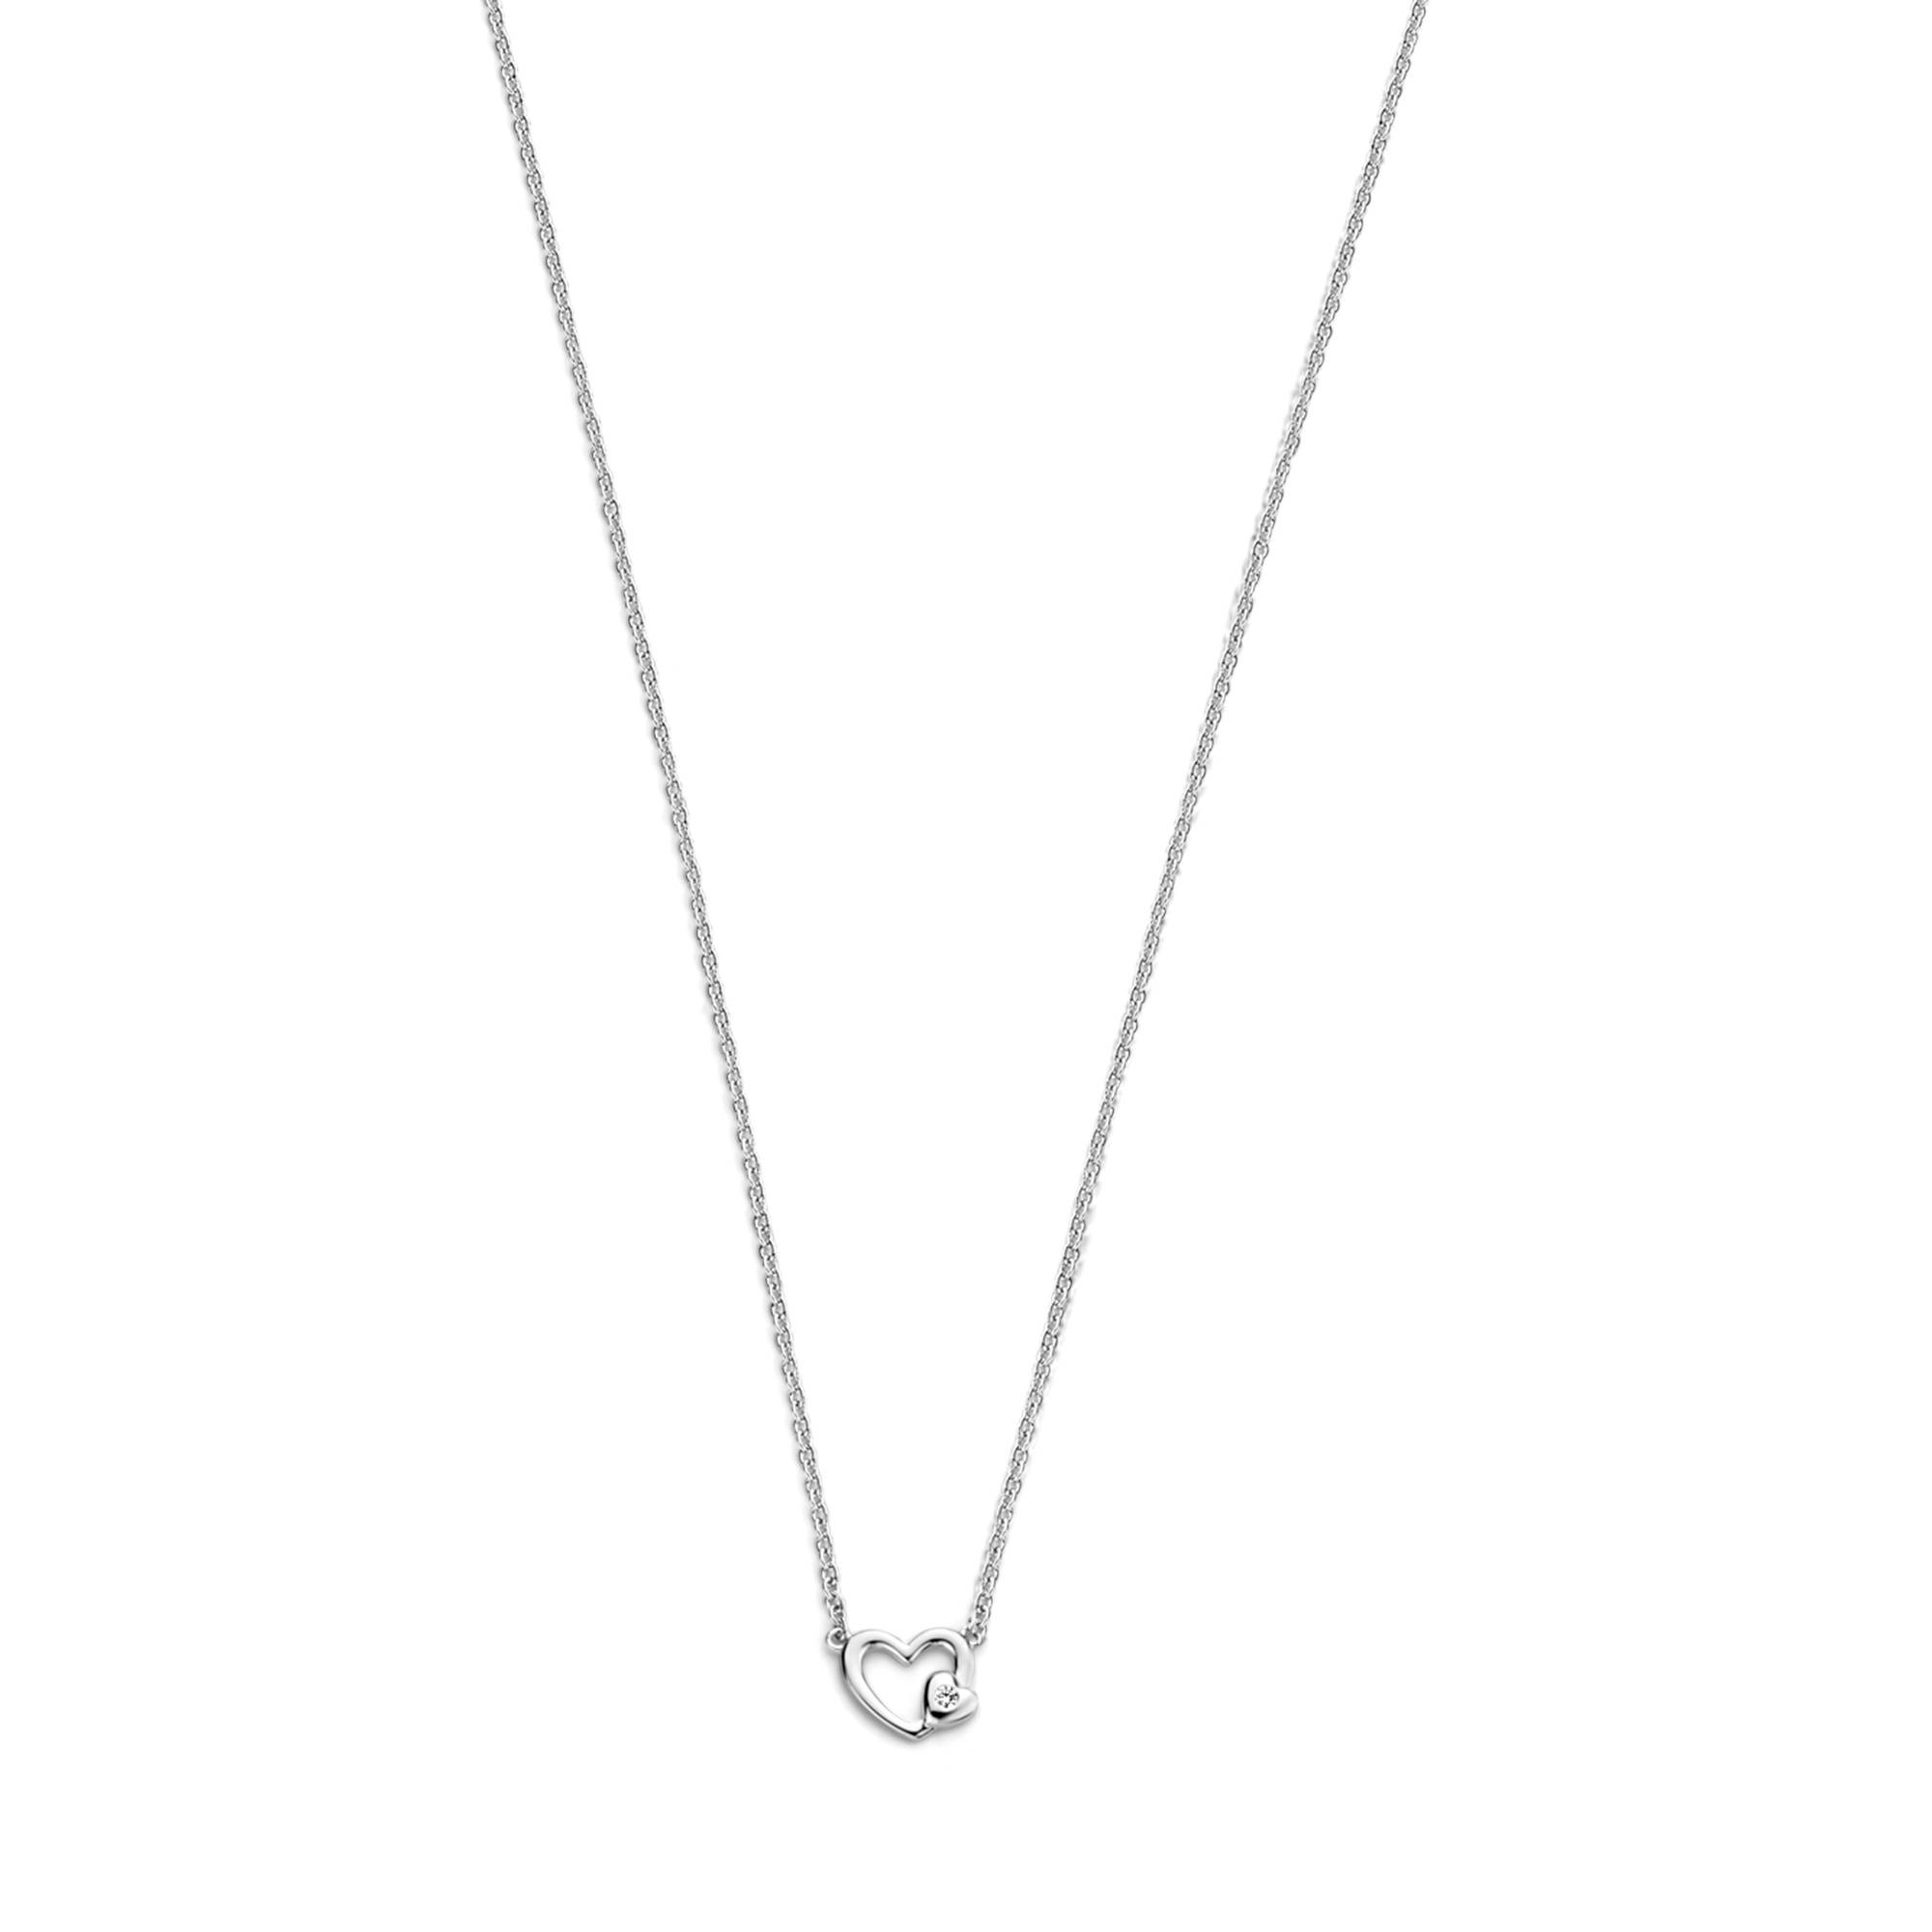 Aimée 925 sterling silver necklace